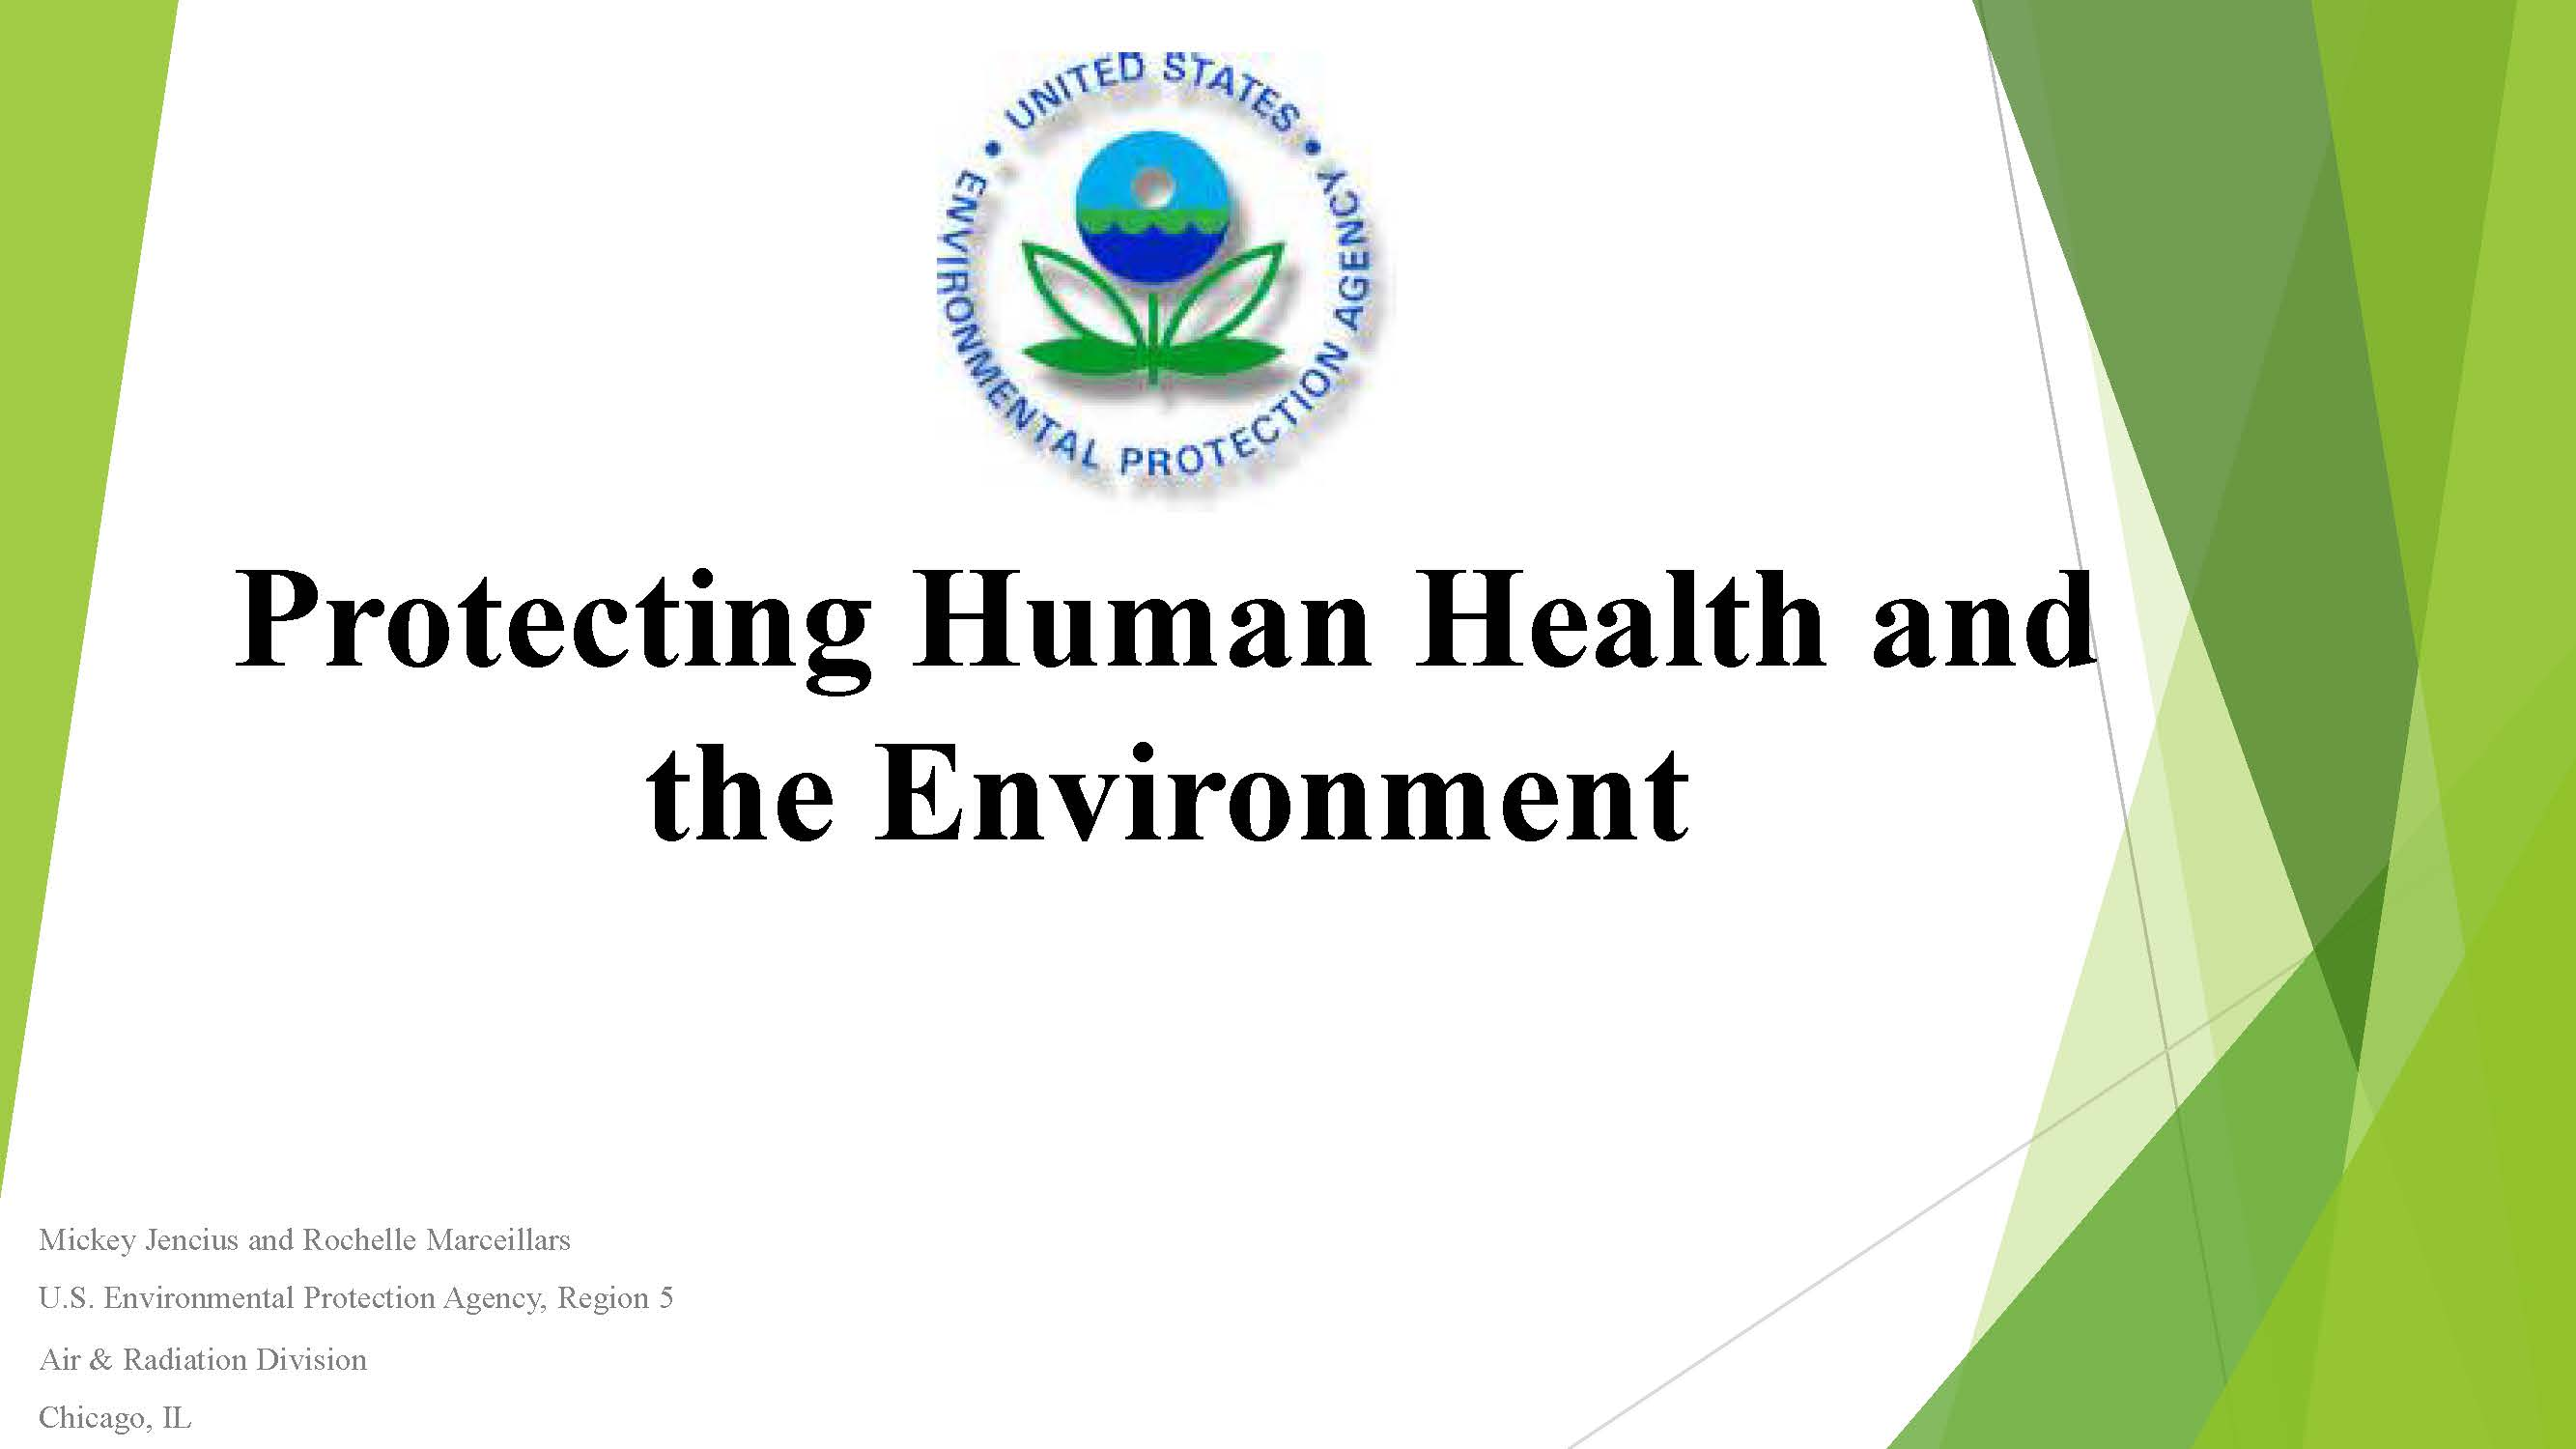 Protecting Human Health and the Environment  Apr2 2018_Page_01